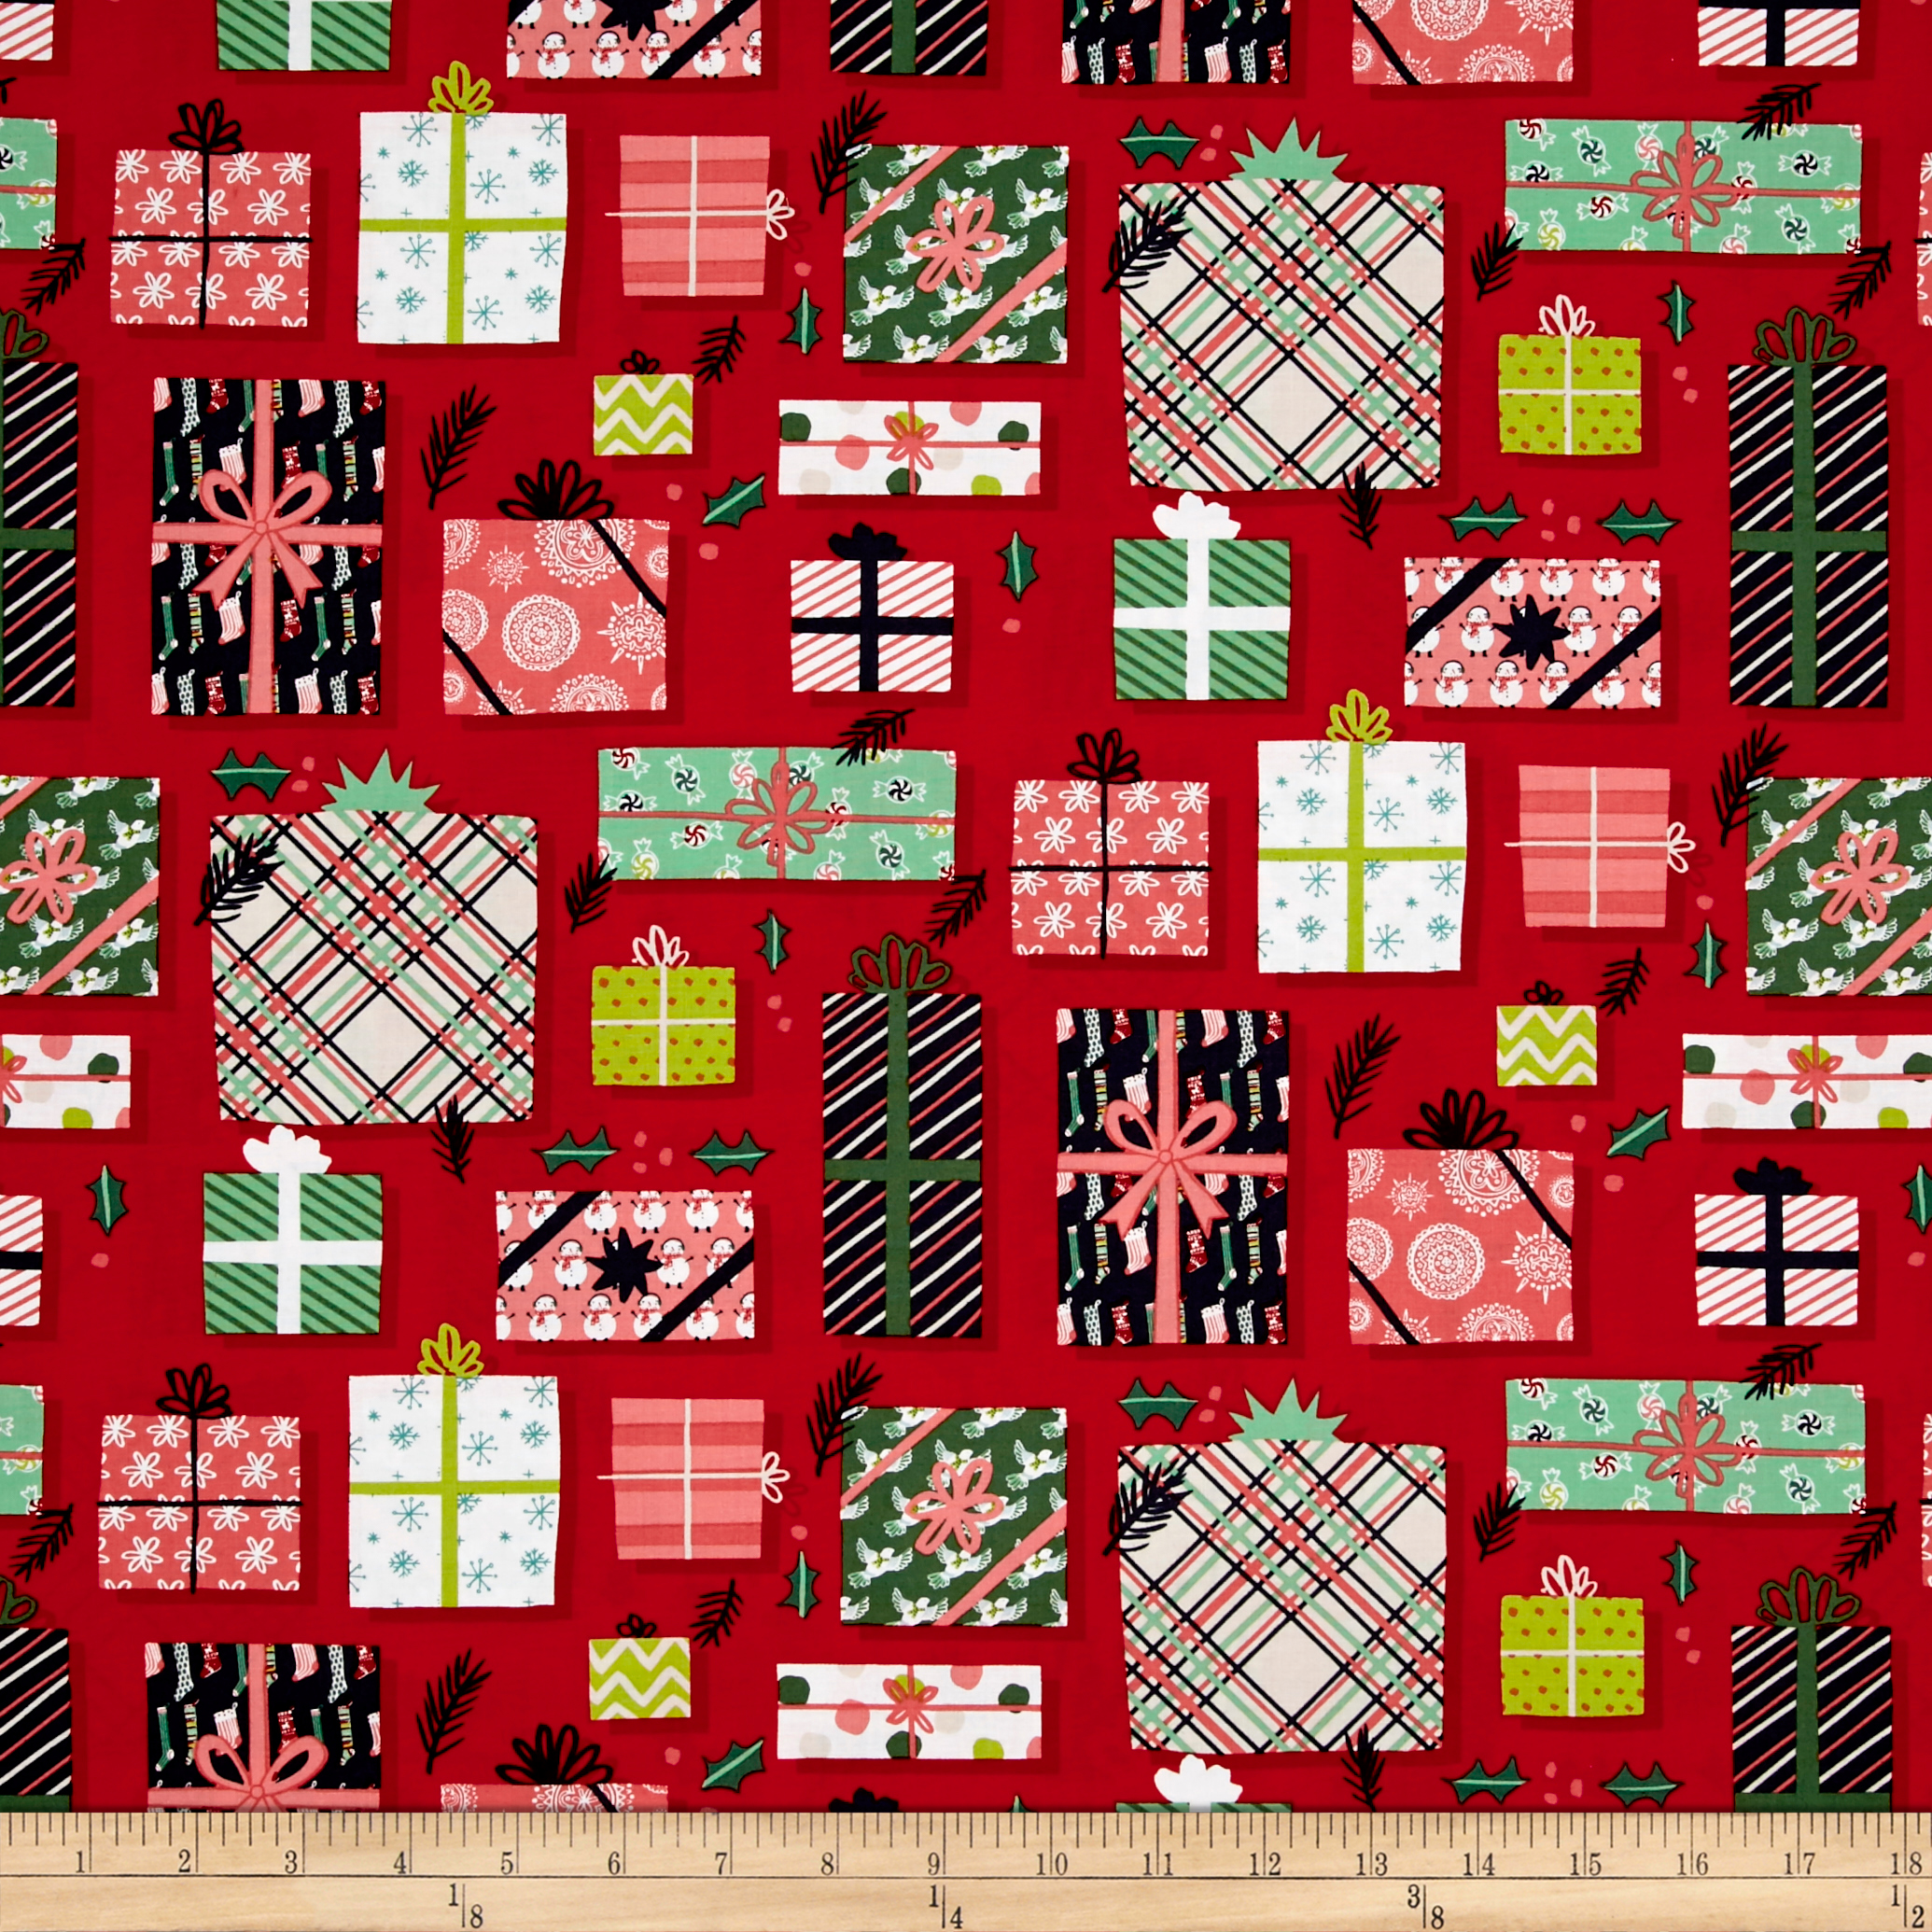 Image of 25 Days of Christmas Gifts Light Red Fabric